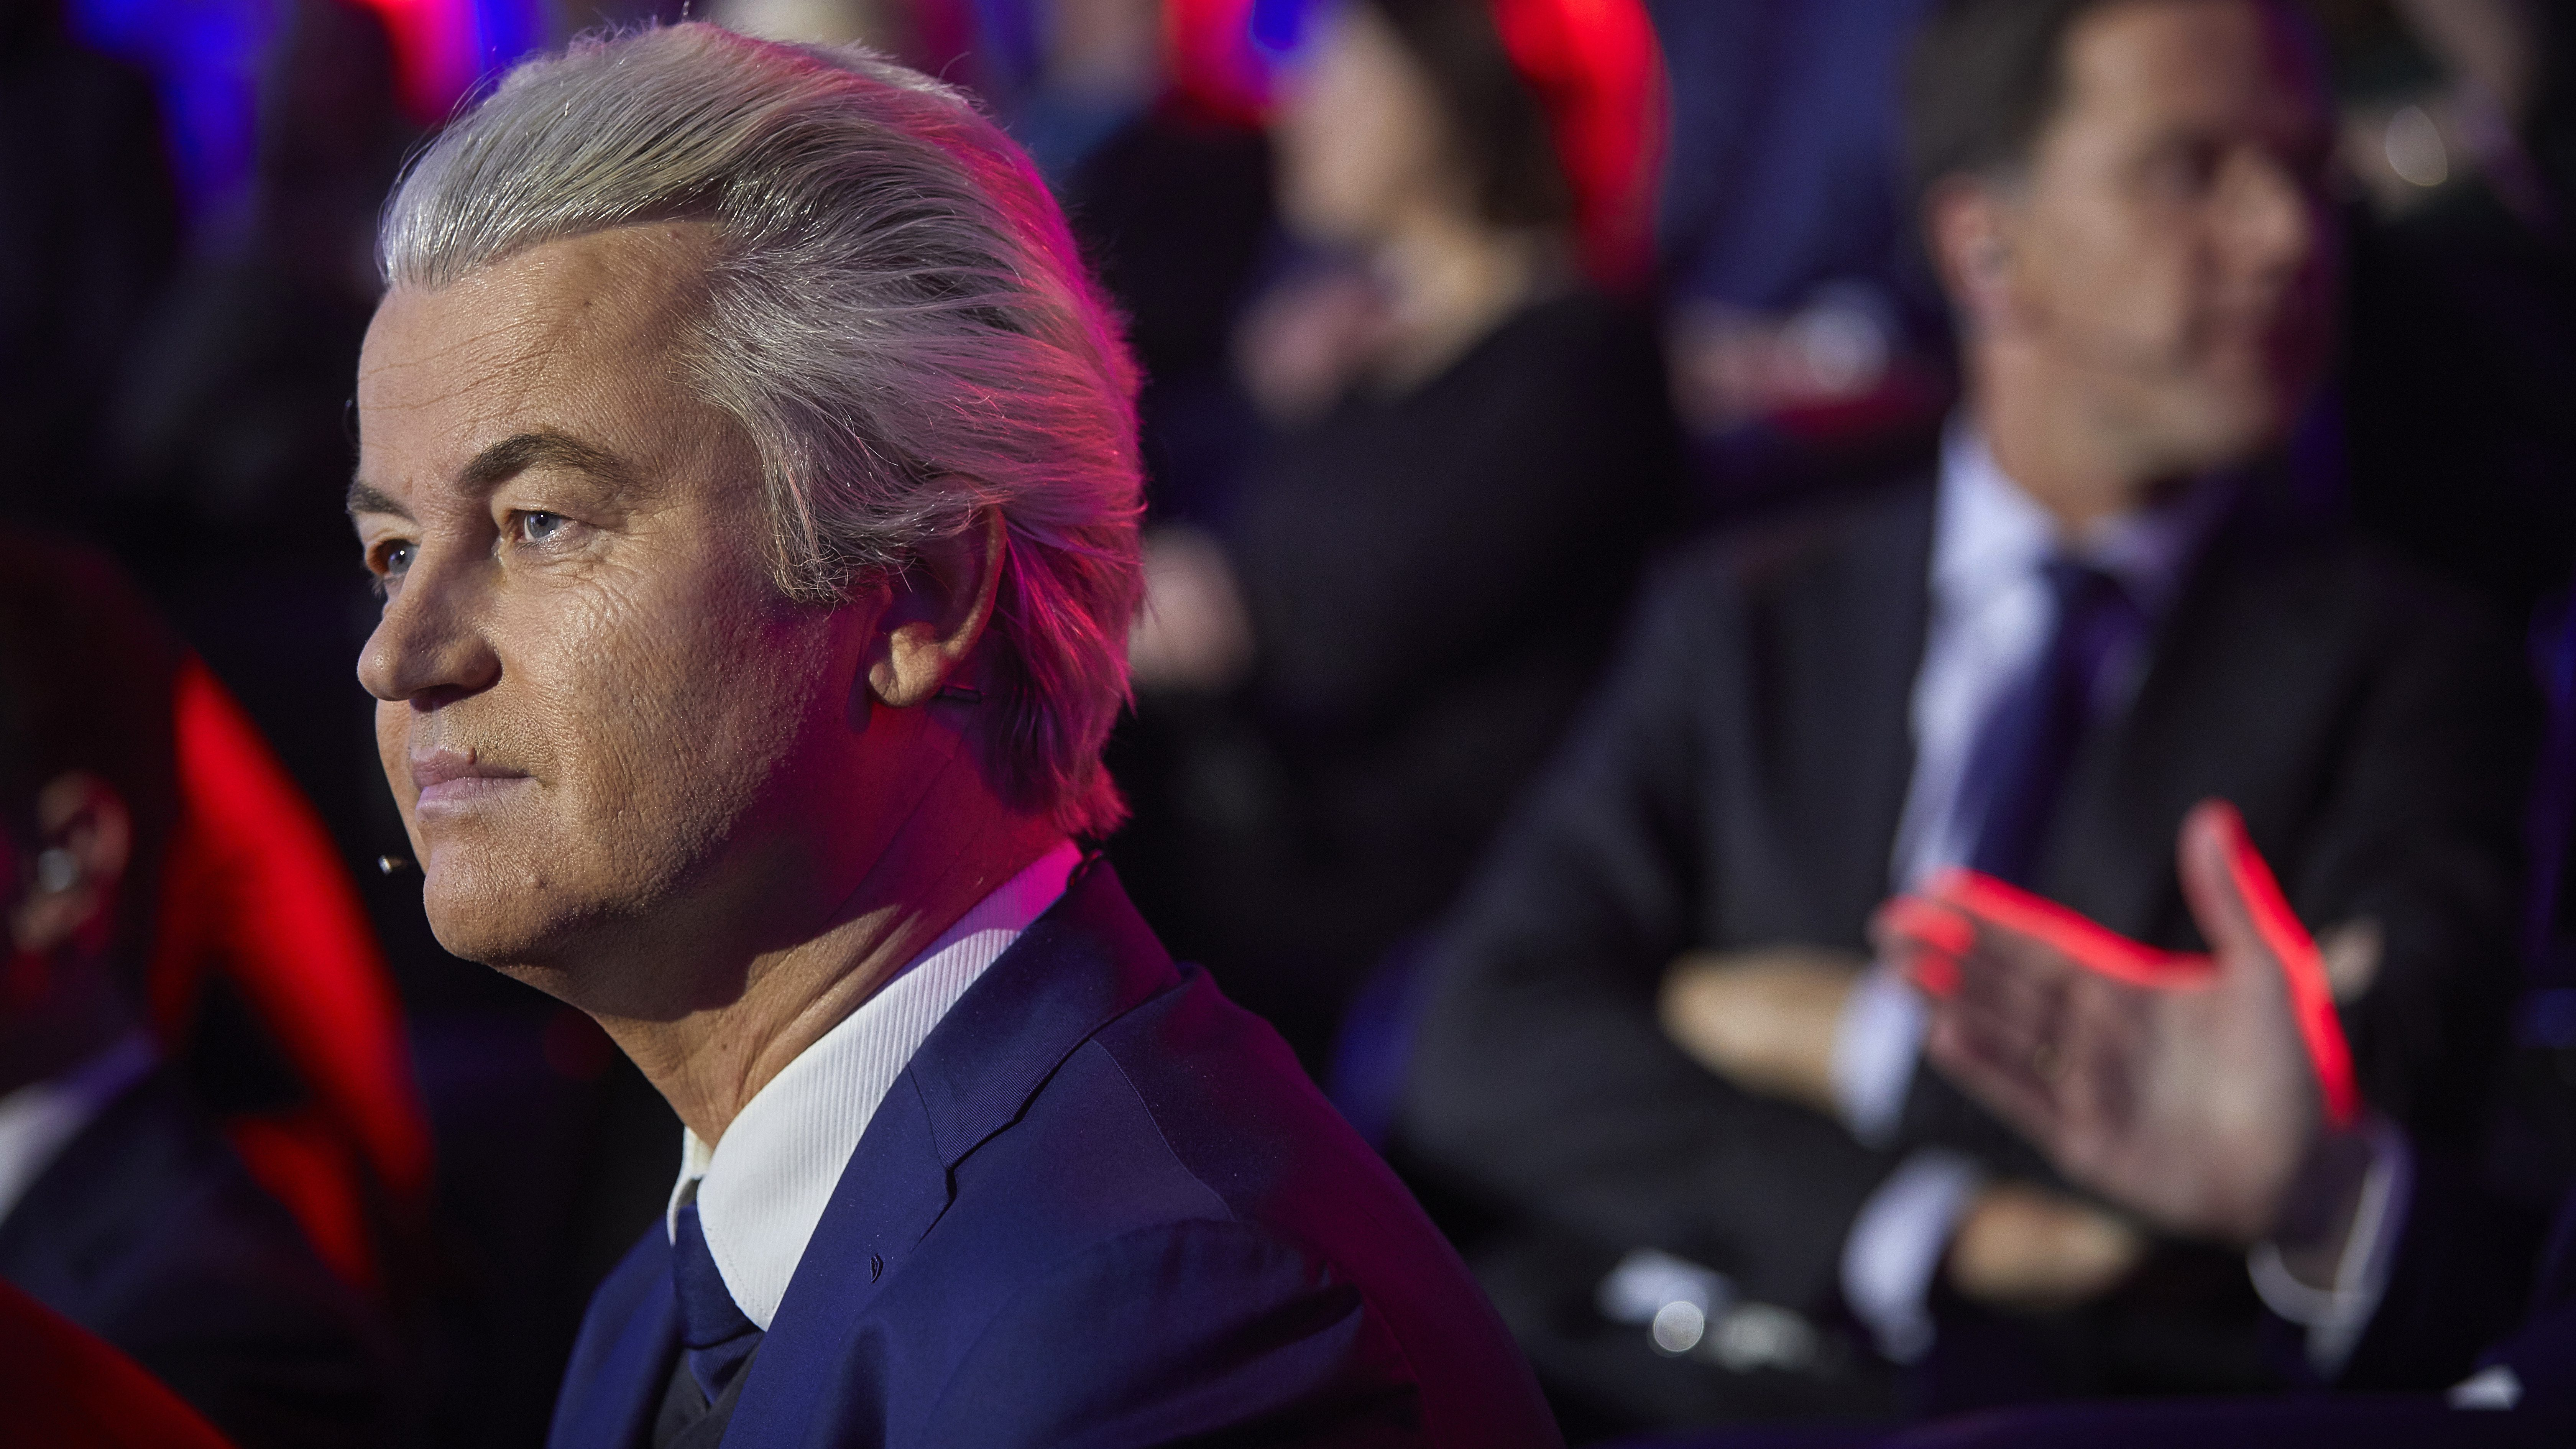 PVV party leader Geert Wilders waits to take his turn in the closing debate at parliament in The Hague, Netherlands, Tuesday, March 14, 2017. Amid unprecedented international attention, the Dutch go to the polls Wednesday in a parliamentary election that is seen as a bellwether for the future of populism in a year of crucial votes in Europe. (Phil Nijhuis HH POOL via AP)